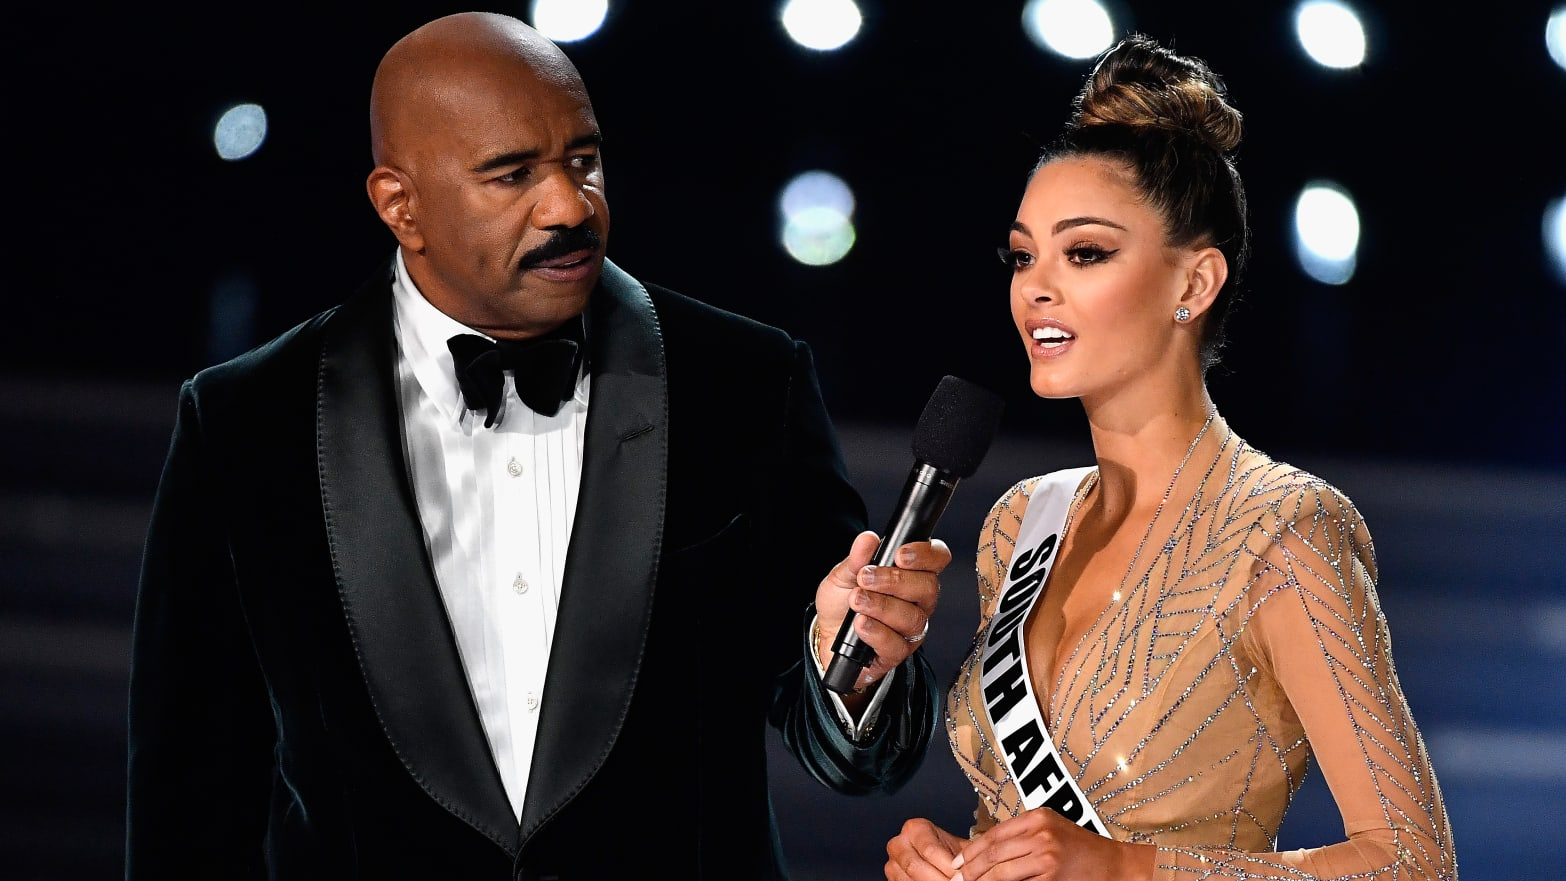 The Miss Universe Pageant Is Still Sexist as Hell, and Not What We